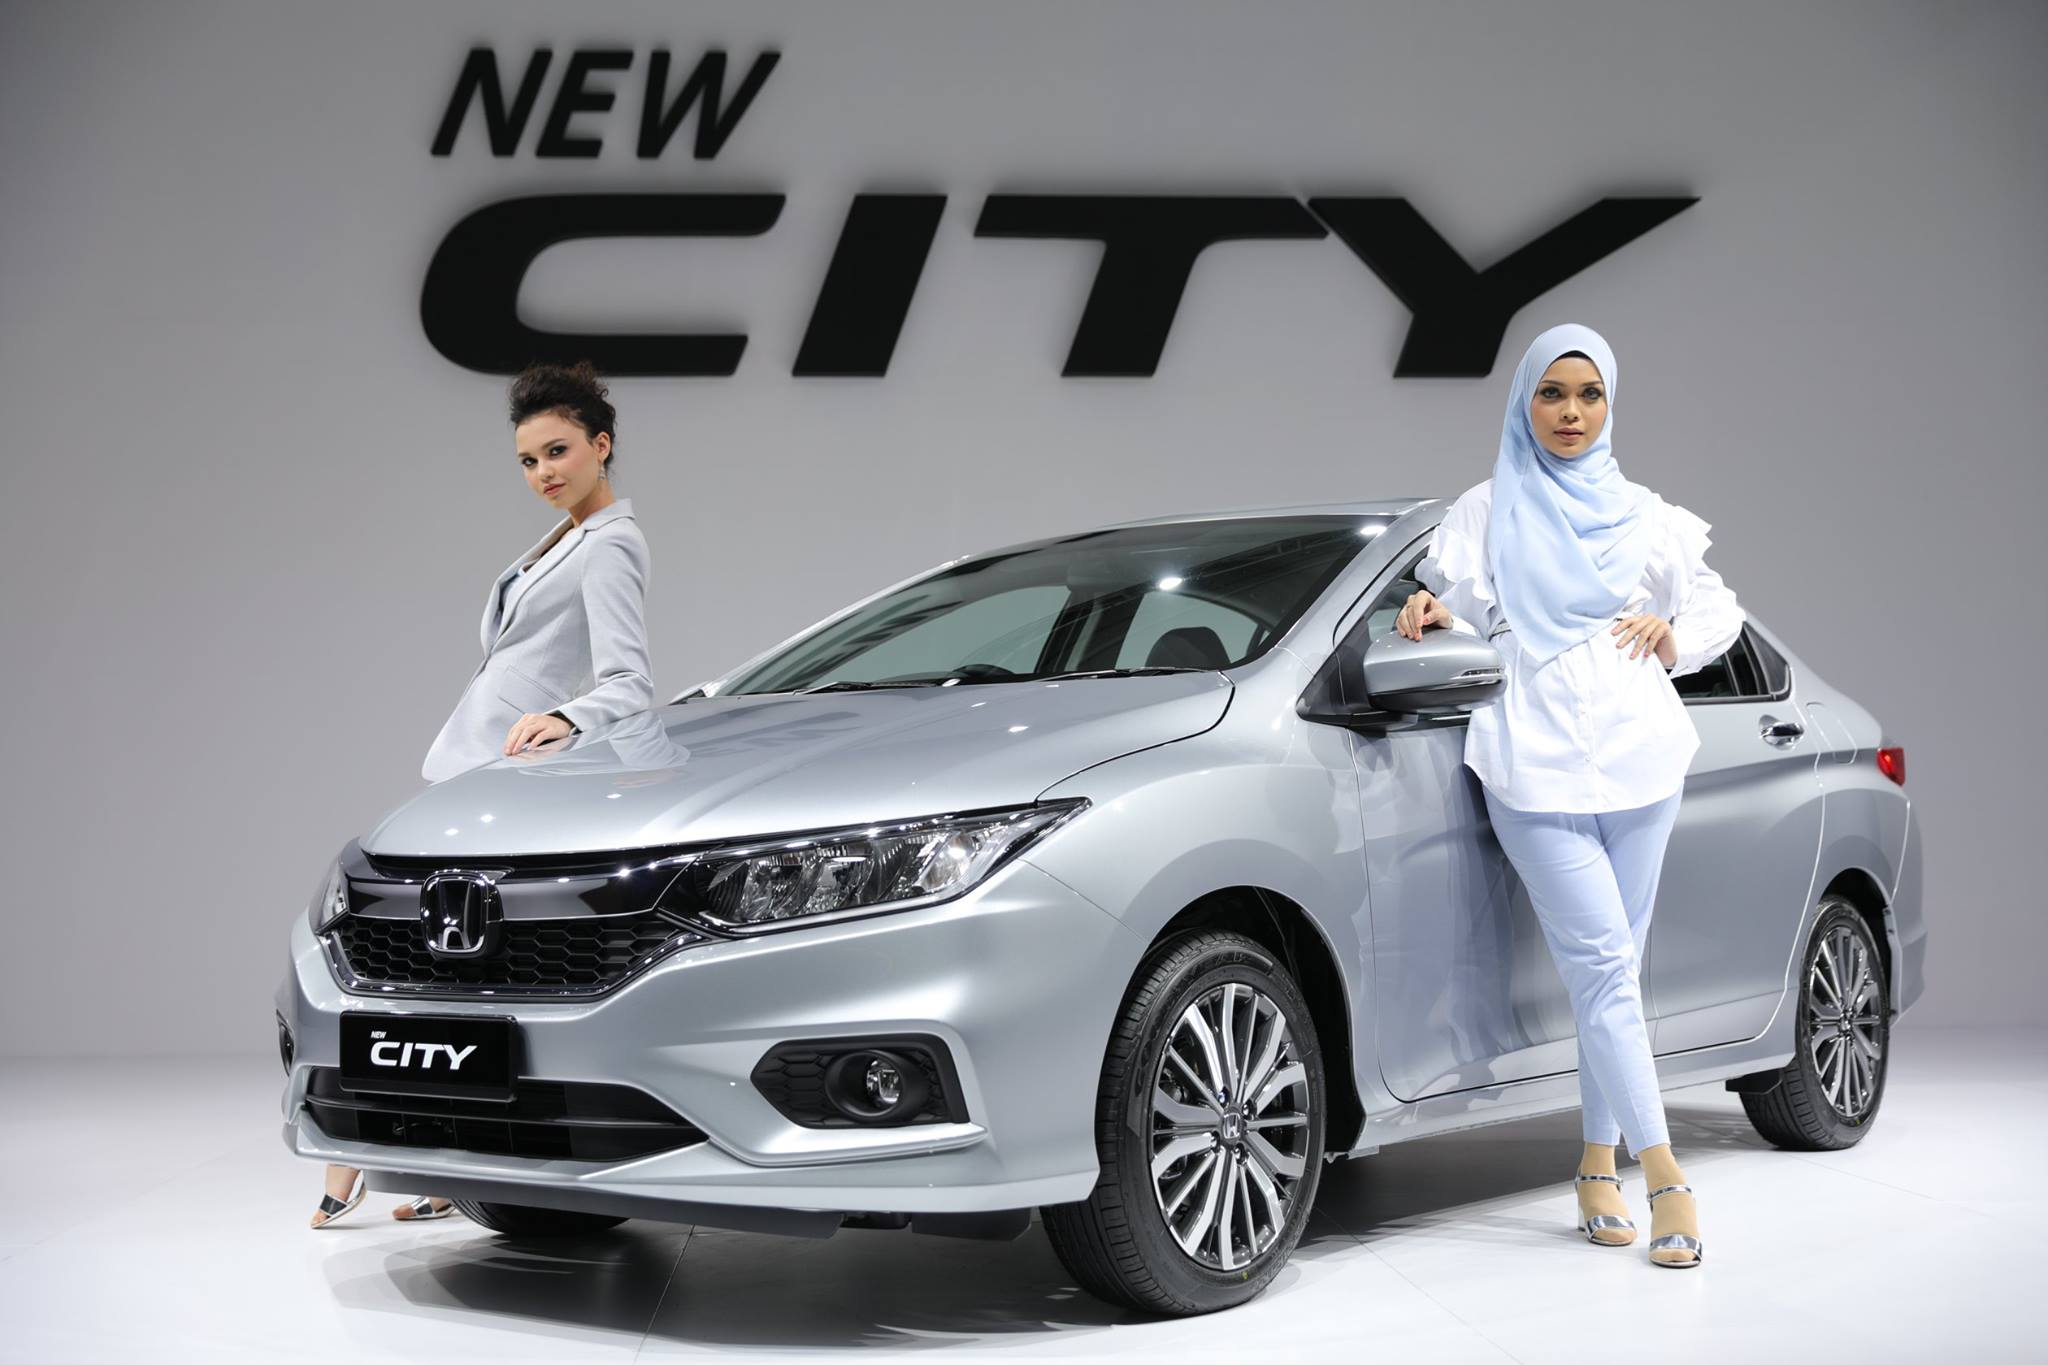 Honda Malaysia Launched The New Honda City (2017) In Malaysia On 2 March  2017 With One Of The Most Popular B Segment Cars In The Country Now  Equipped With ...